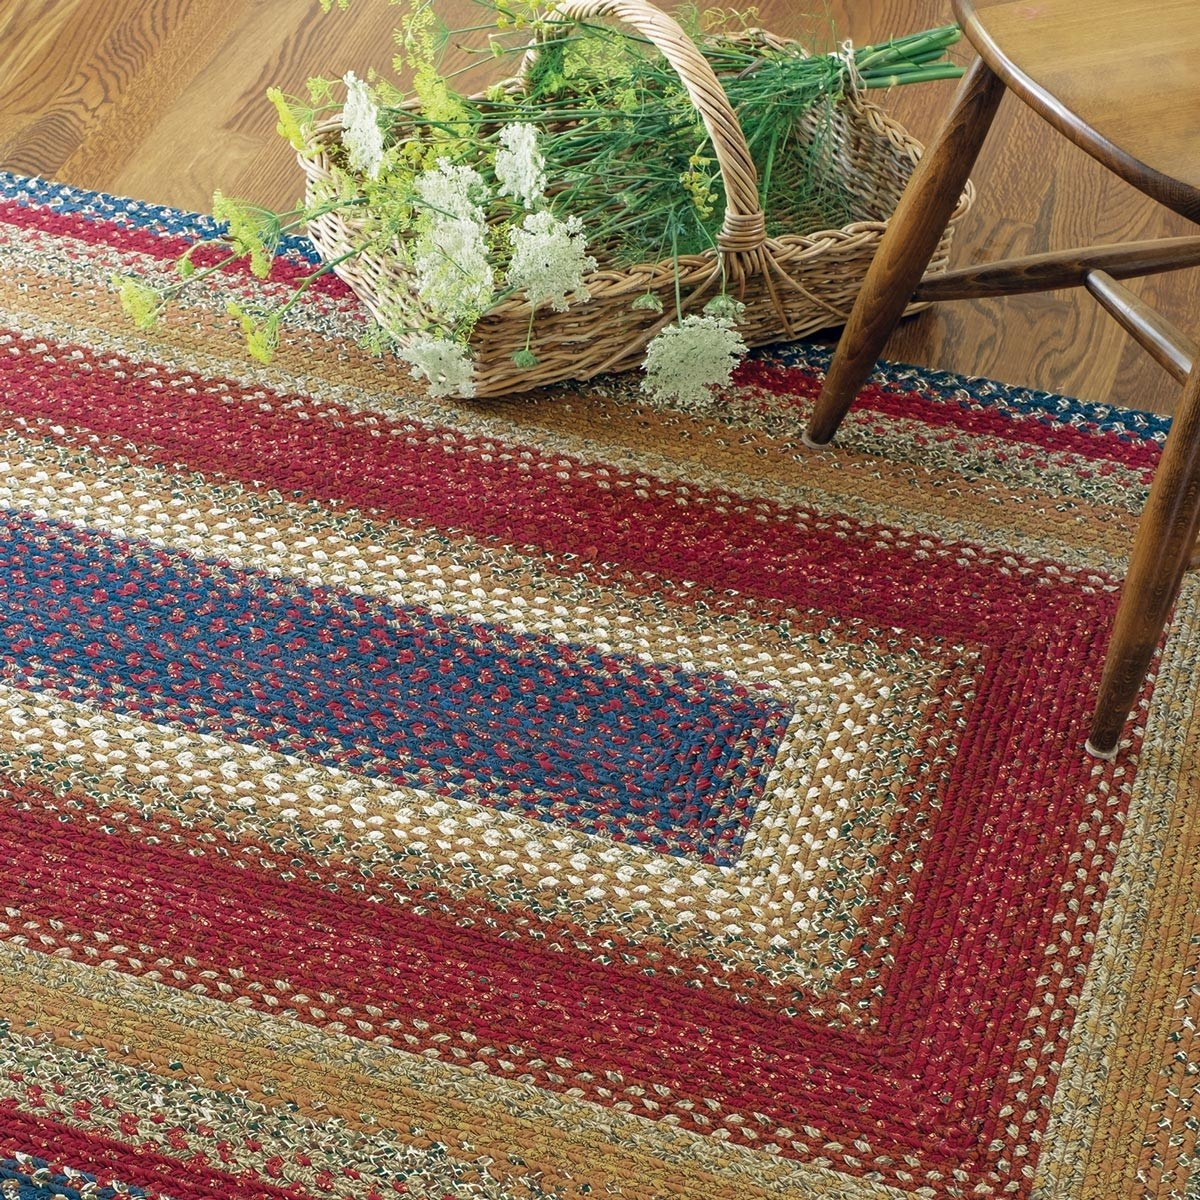 Buy Log Cabin Step Multi Color Cotton Braided Rugs Online